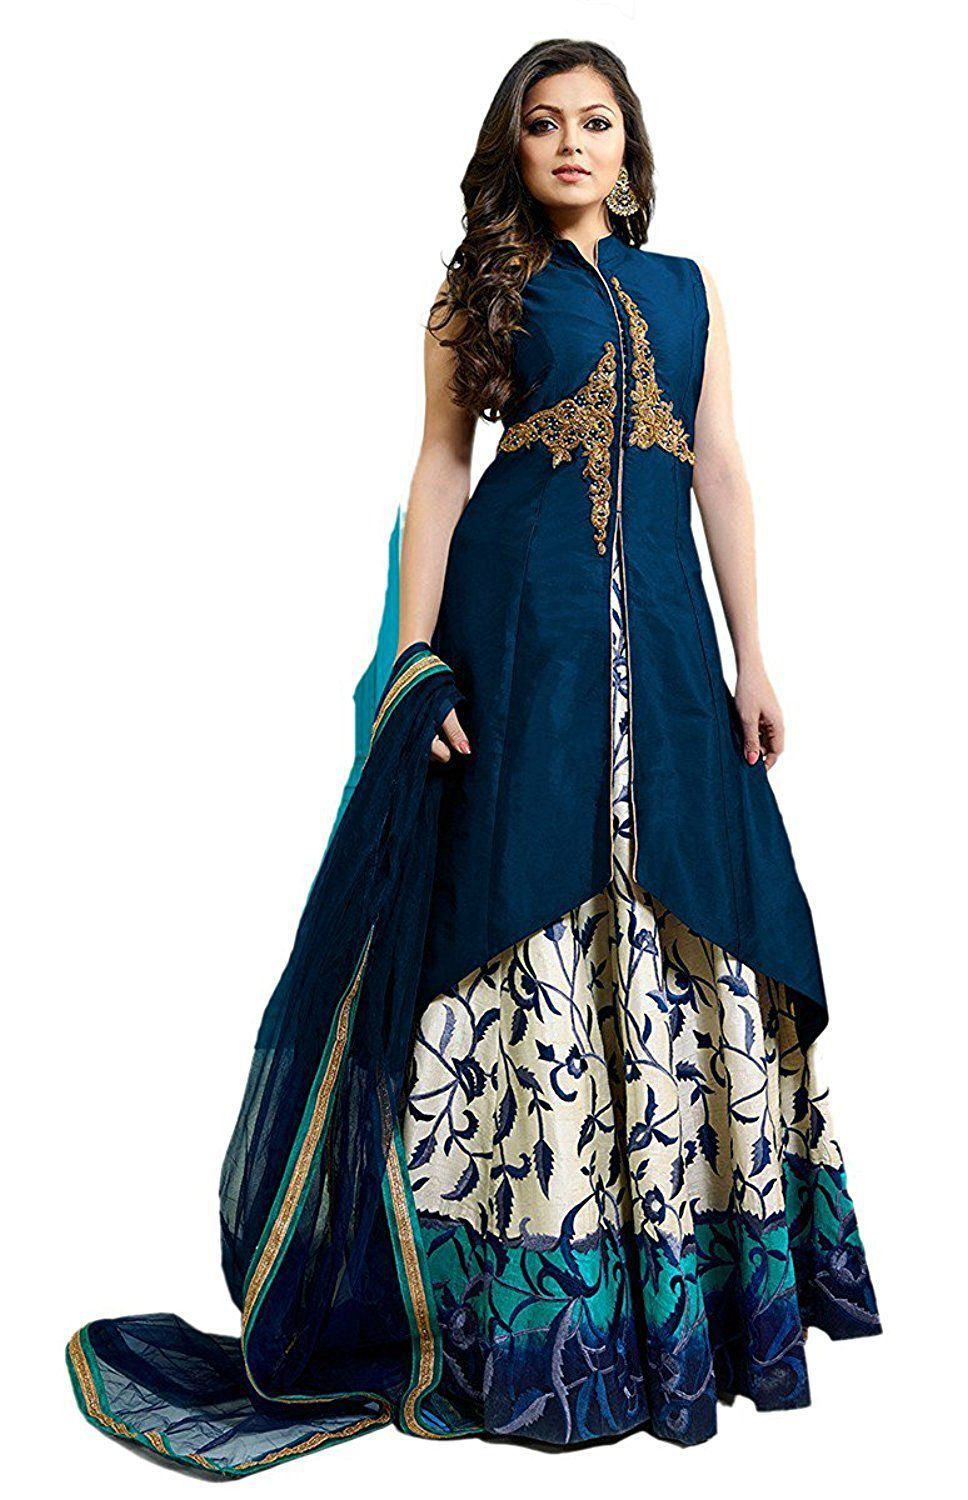 0631d5d3be3 Great Indian Sell gowns for women party wear (lehenga choli for wedding  function salwar suits for women gowns for girls party wear 18 ...